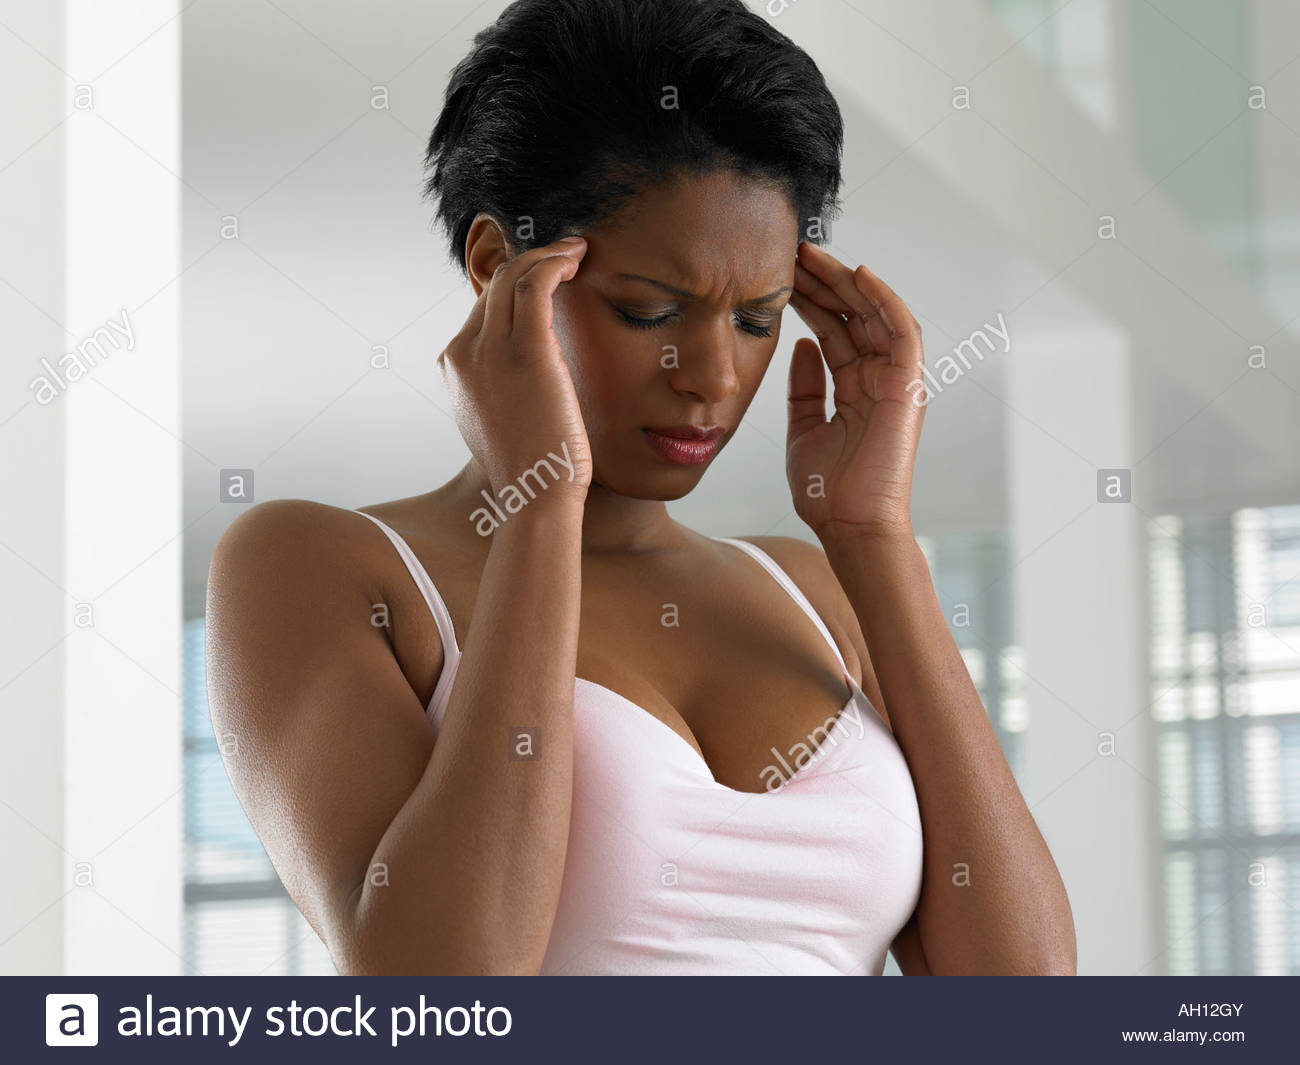 A woman with a headache - Stock Image